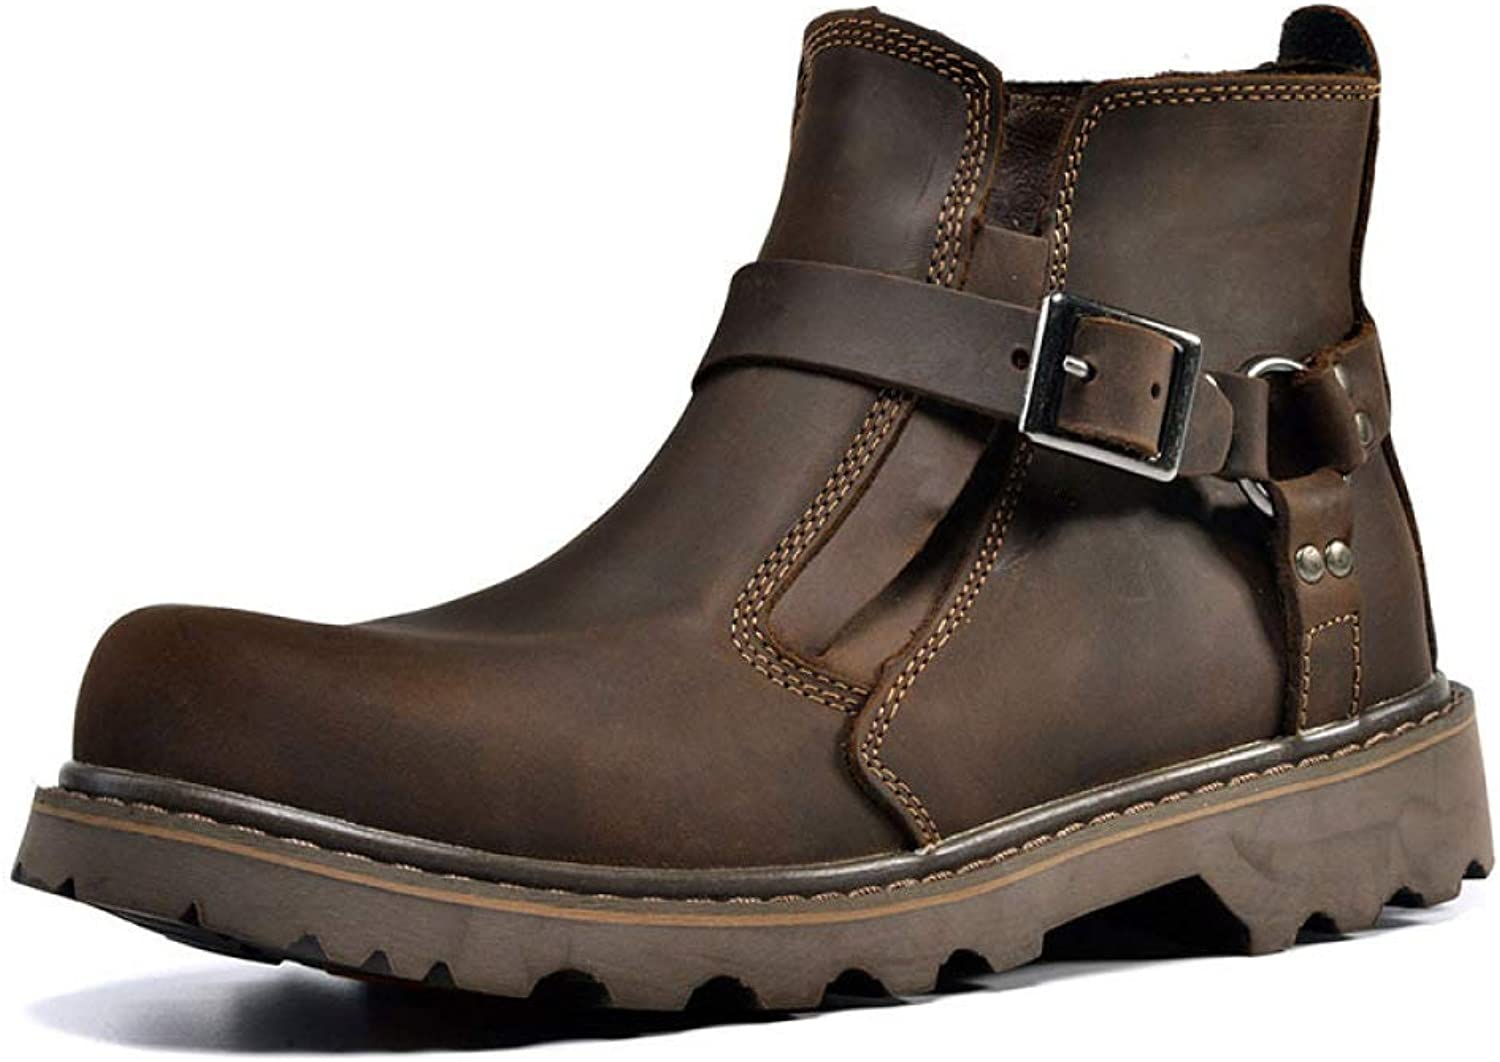 shoes Men's Martin Boots Ankle Footwear Outdoor Plus Velvet Warm Tooling Military Leather Boots Autumn and Winter Non-Slip Fashion,Brown-38